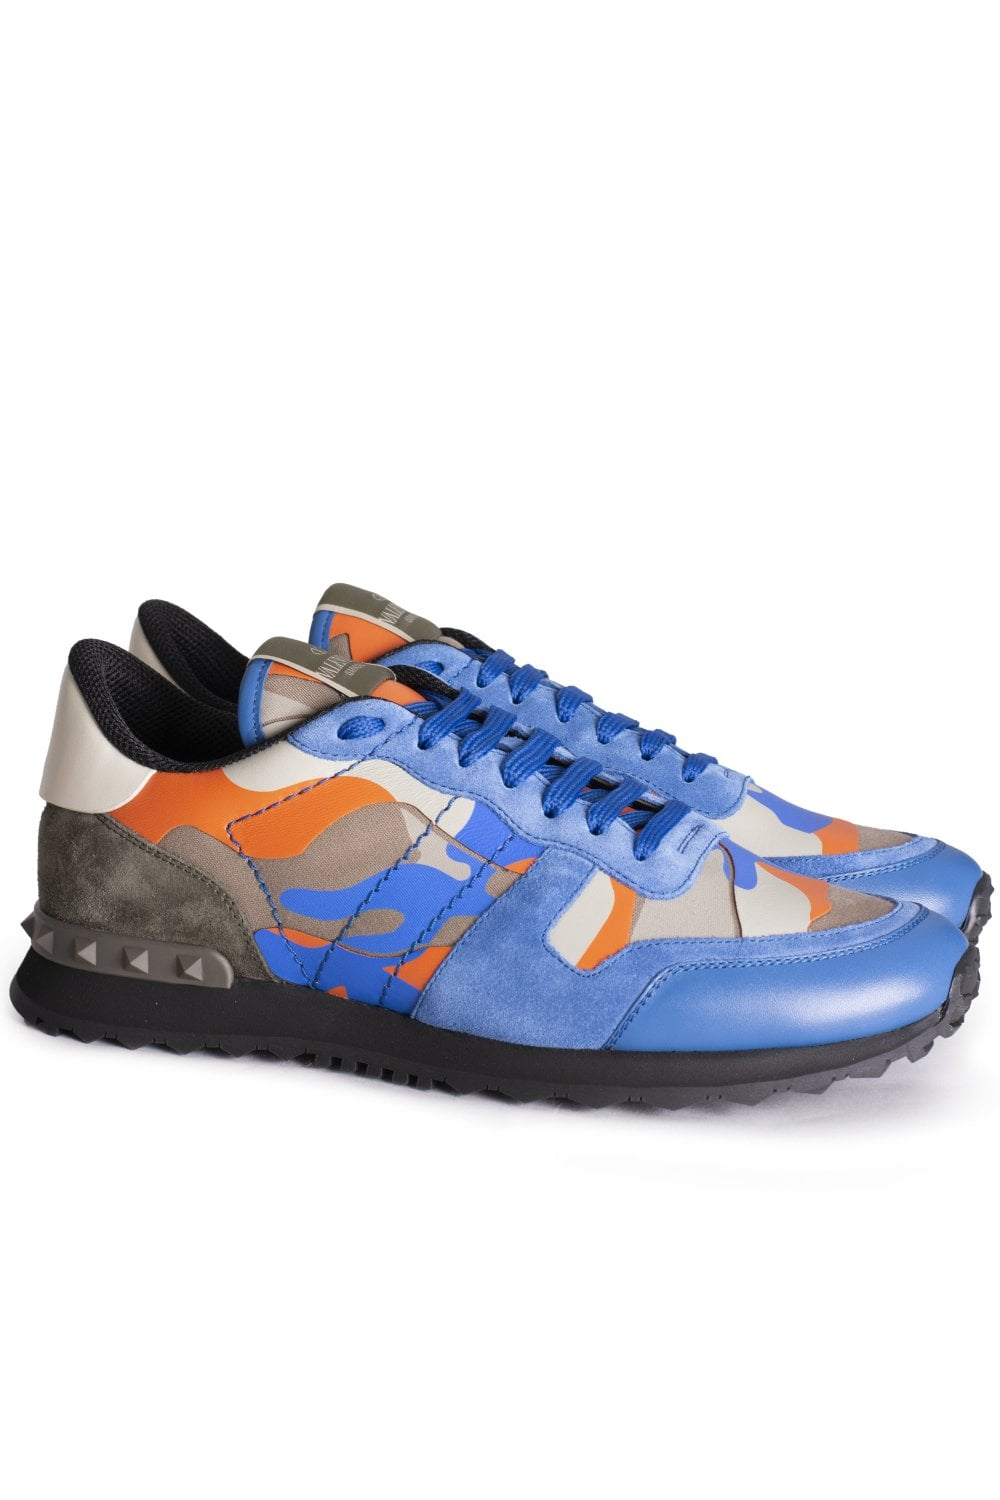 26e6b960eb0d0 VALENTINO Valentino Rockrunner Camouflage Sneakers - Footwear from ...